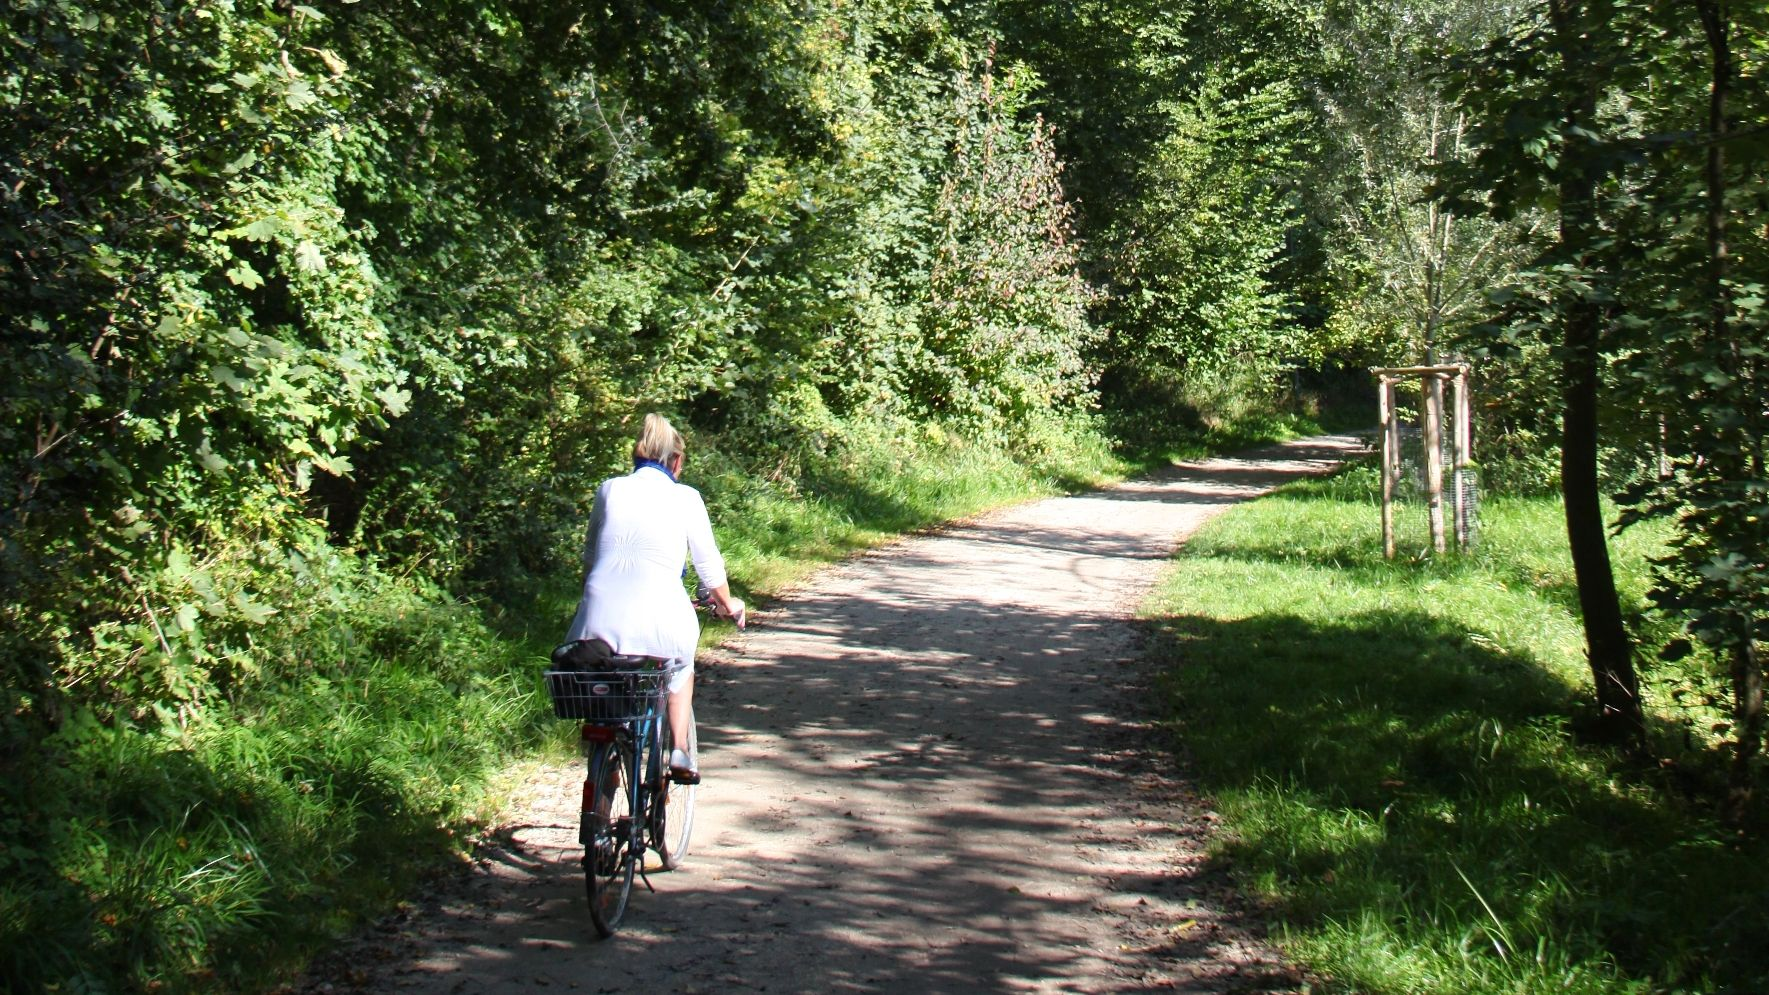 Ammer-Amper cycle track near Dachau, Photo: City of Dachau